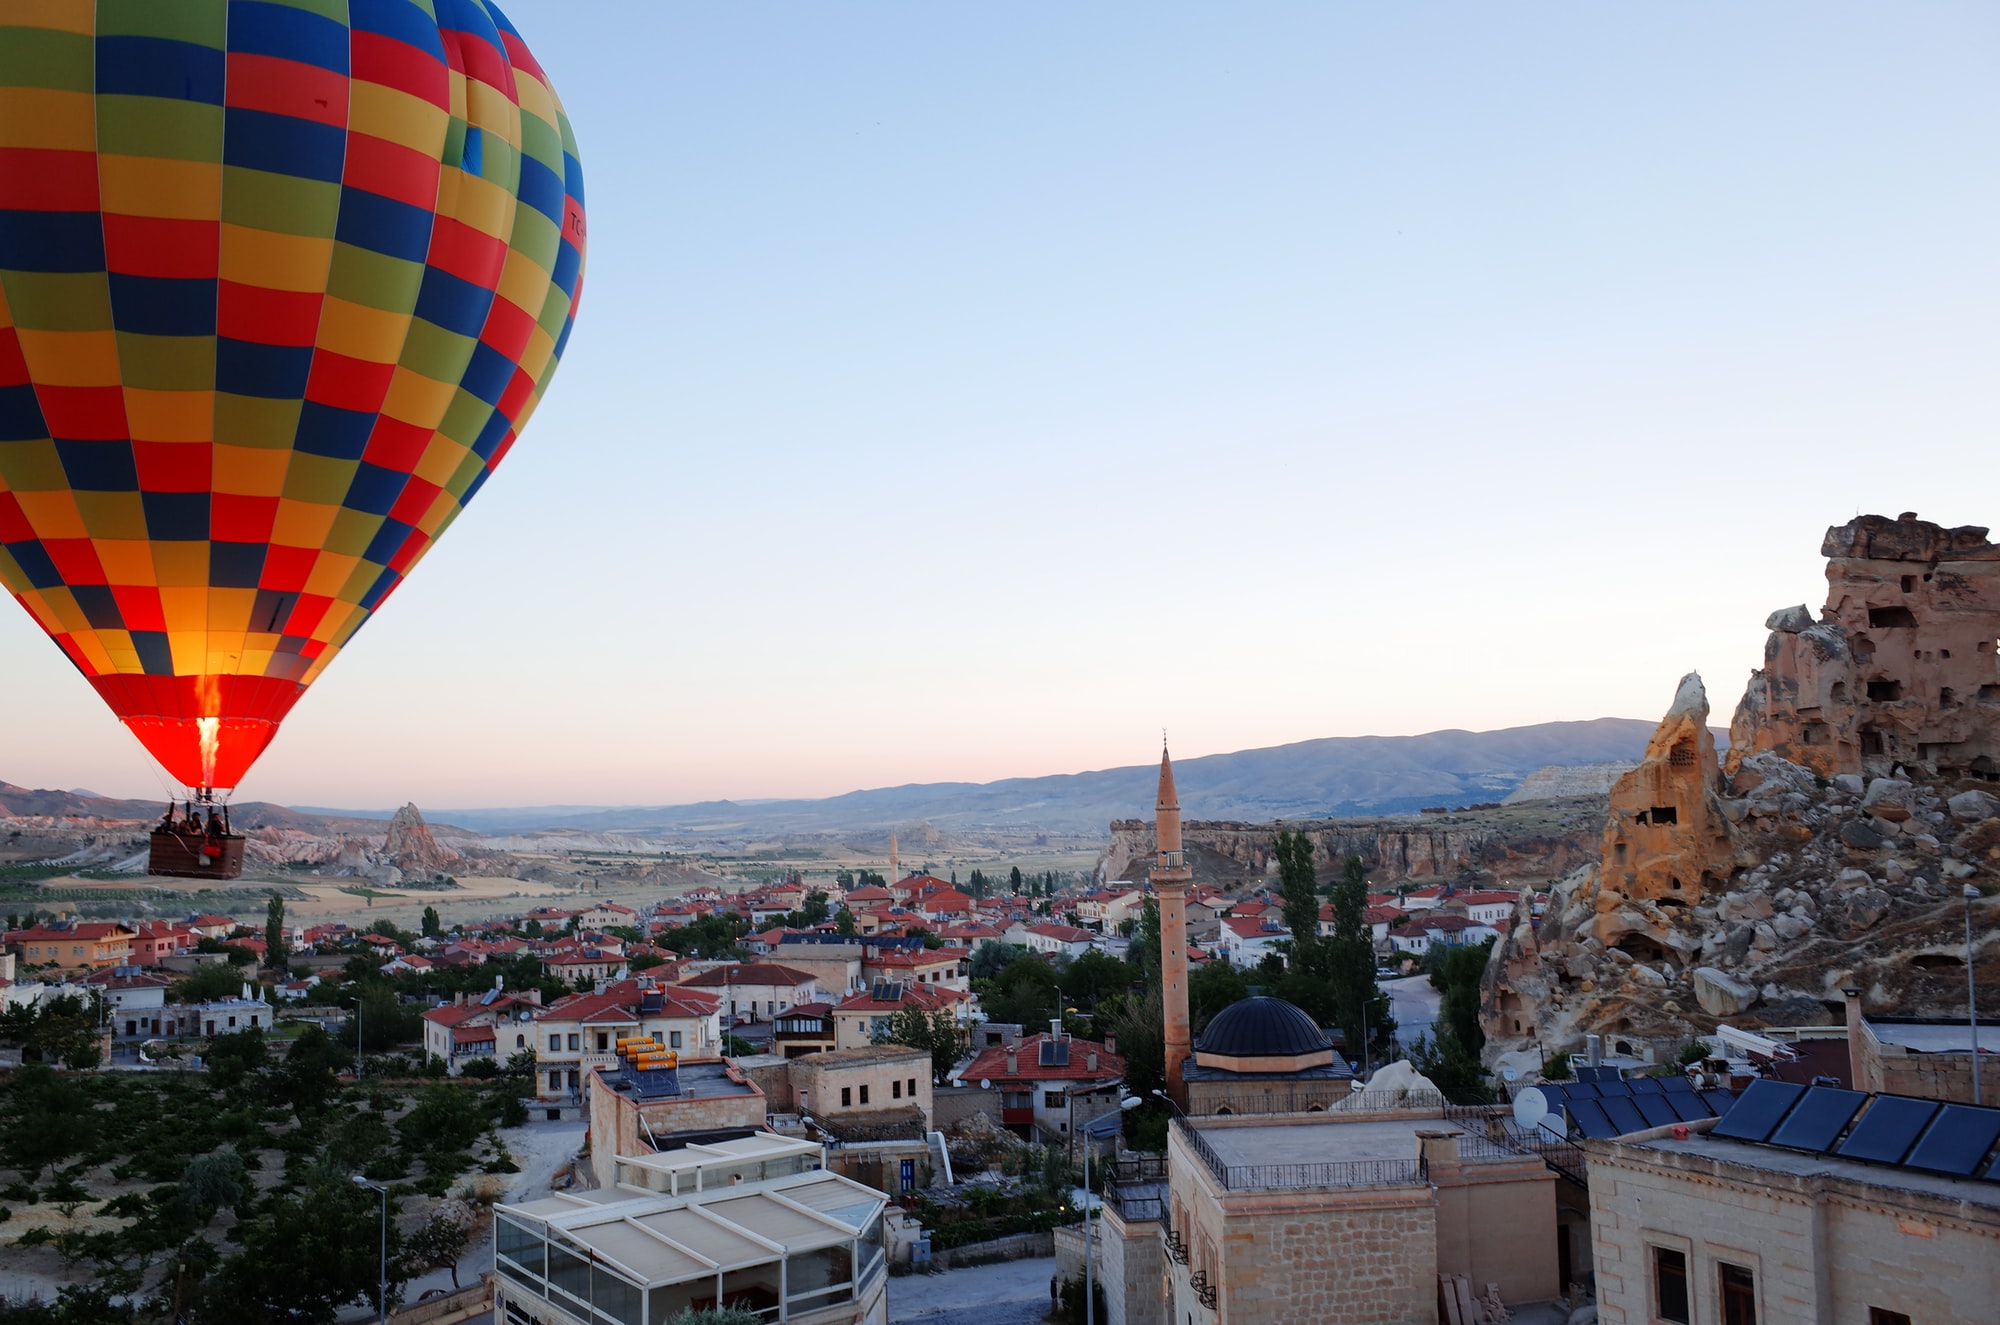 A hot air balloon in Cappadocia